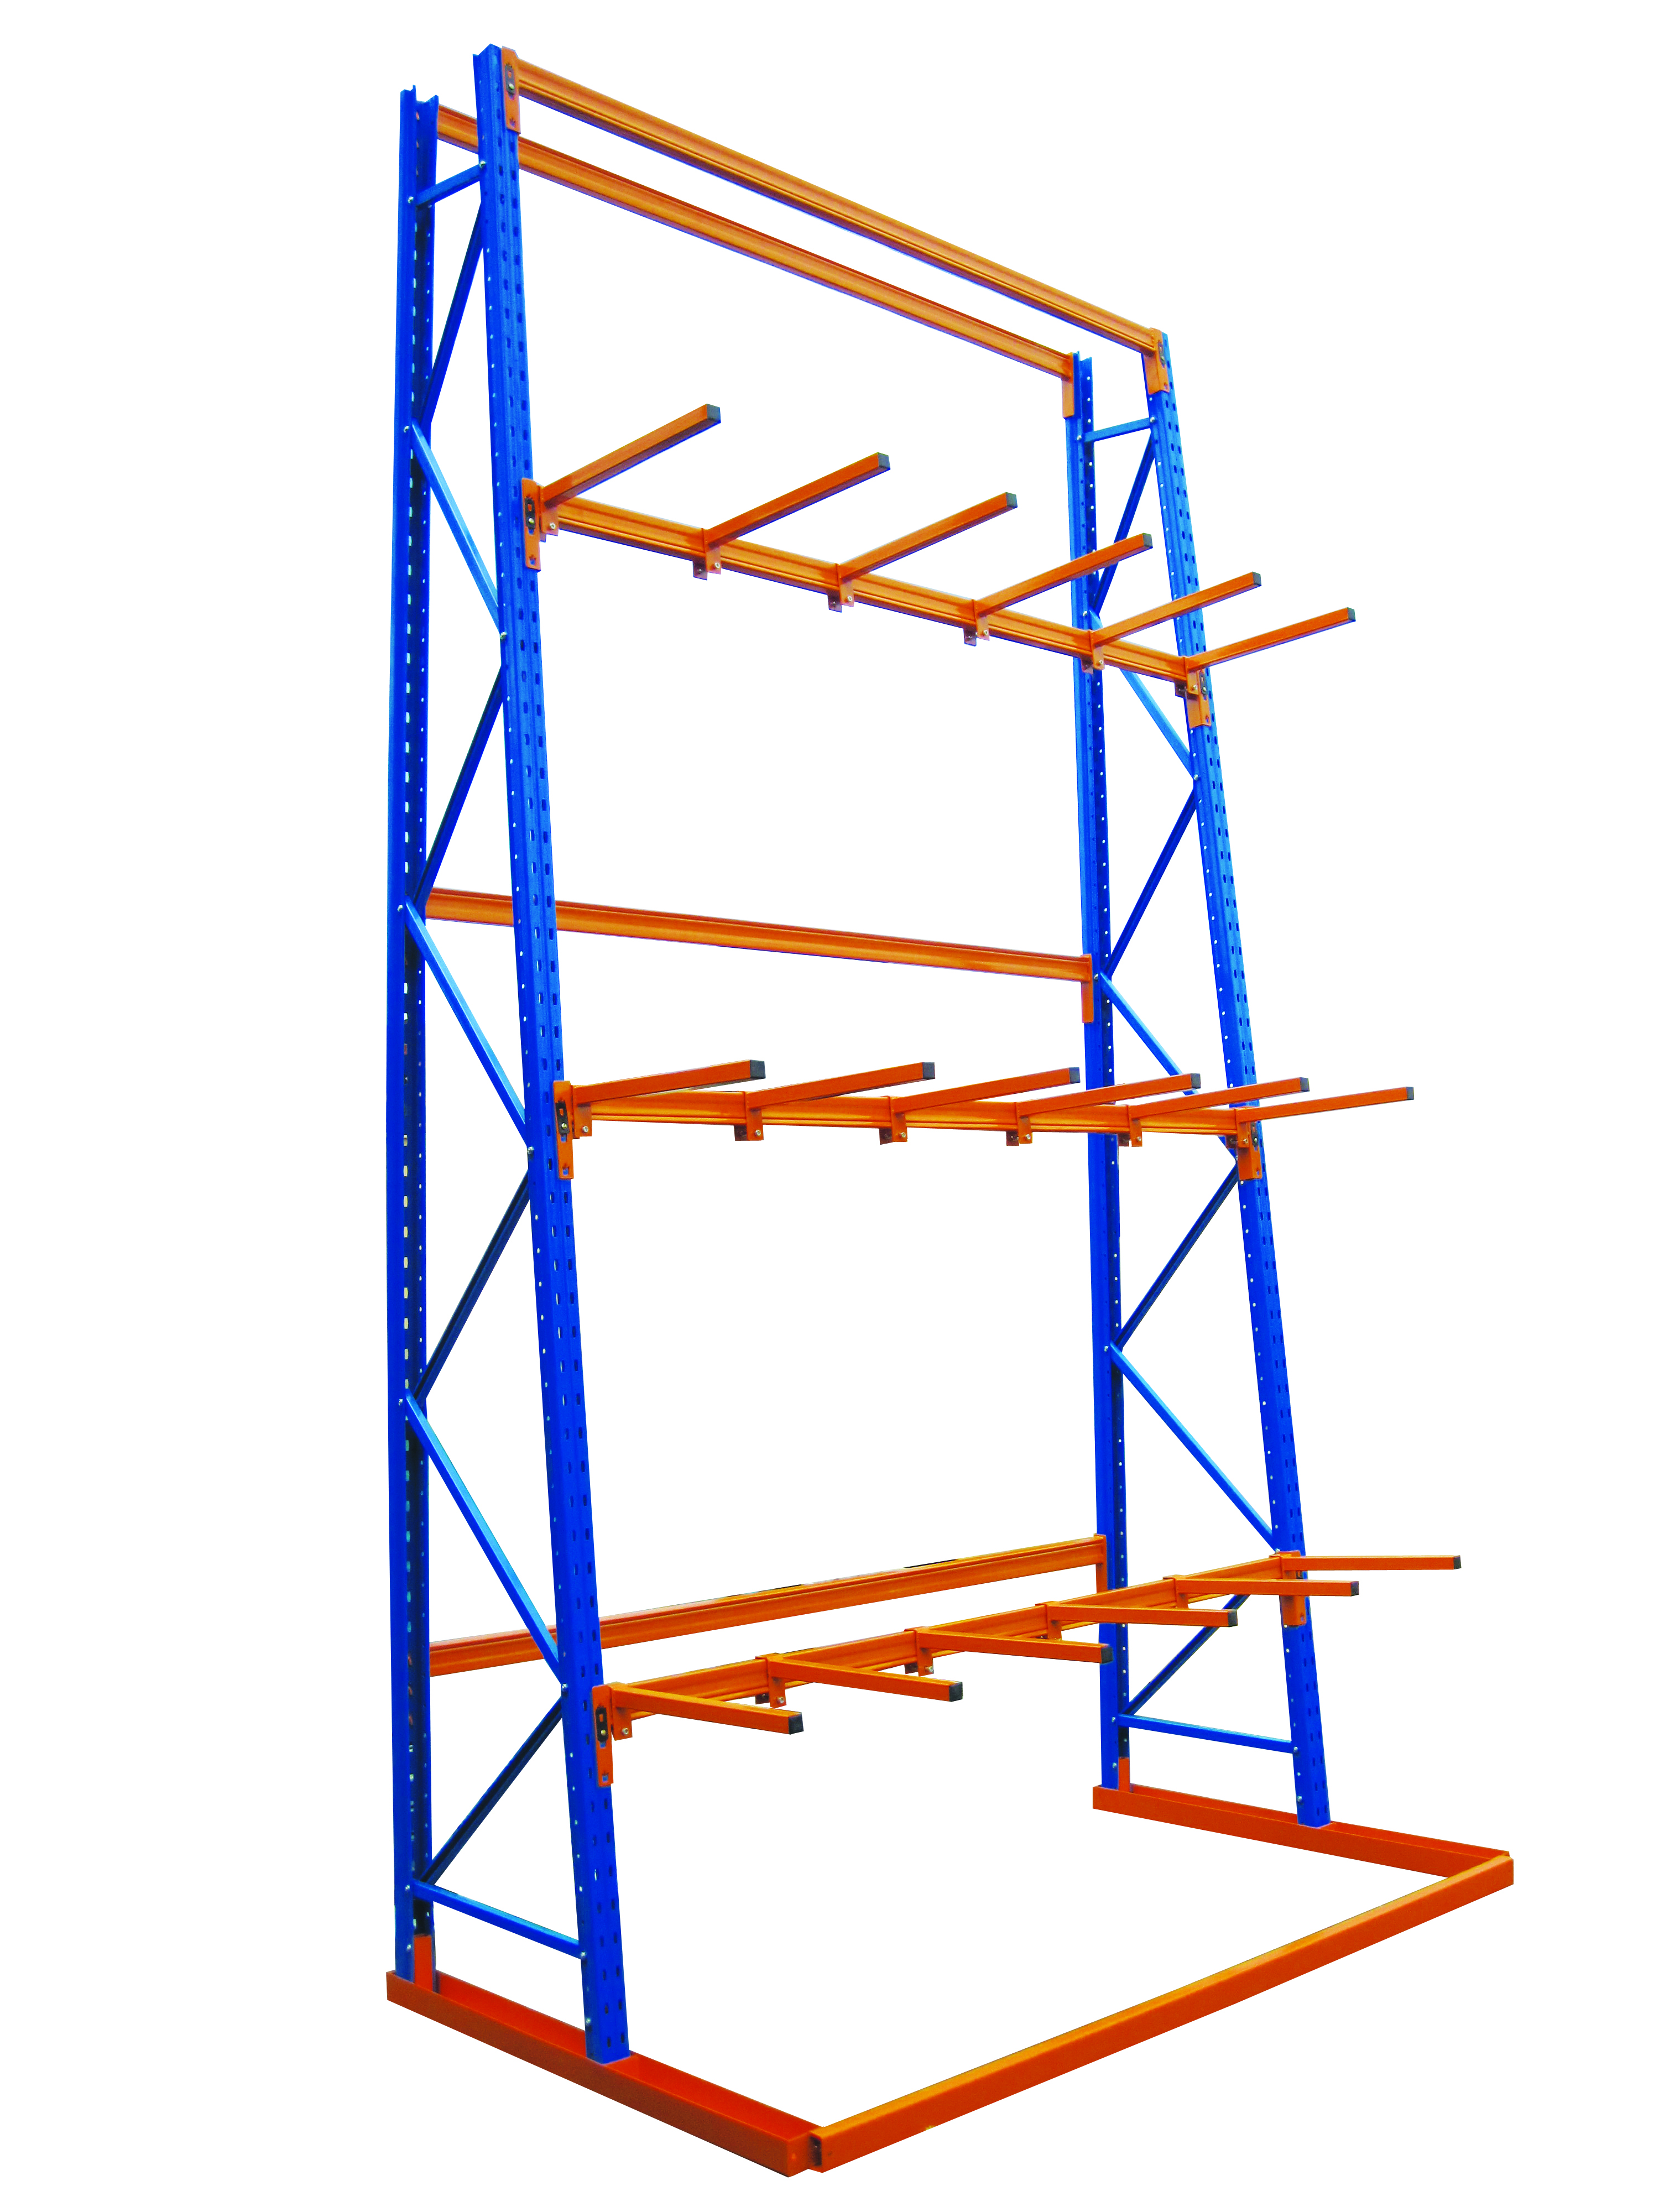 fill with use fm mit rohrkragarm rack arms fn cantilever racking racks fit bito sided chromasub svg kragarmregale tubular blue top gb typ type l en single p shop extend q